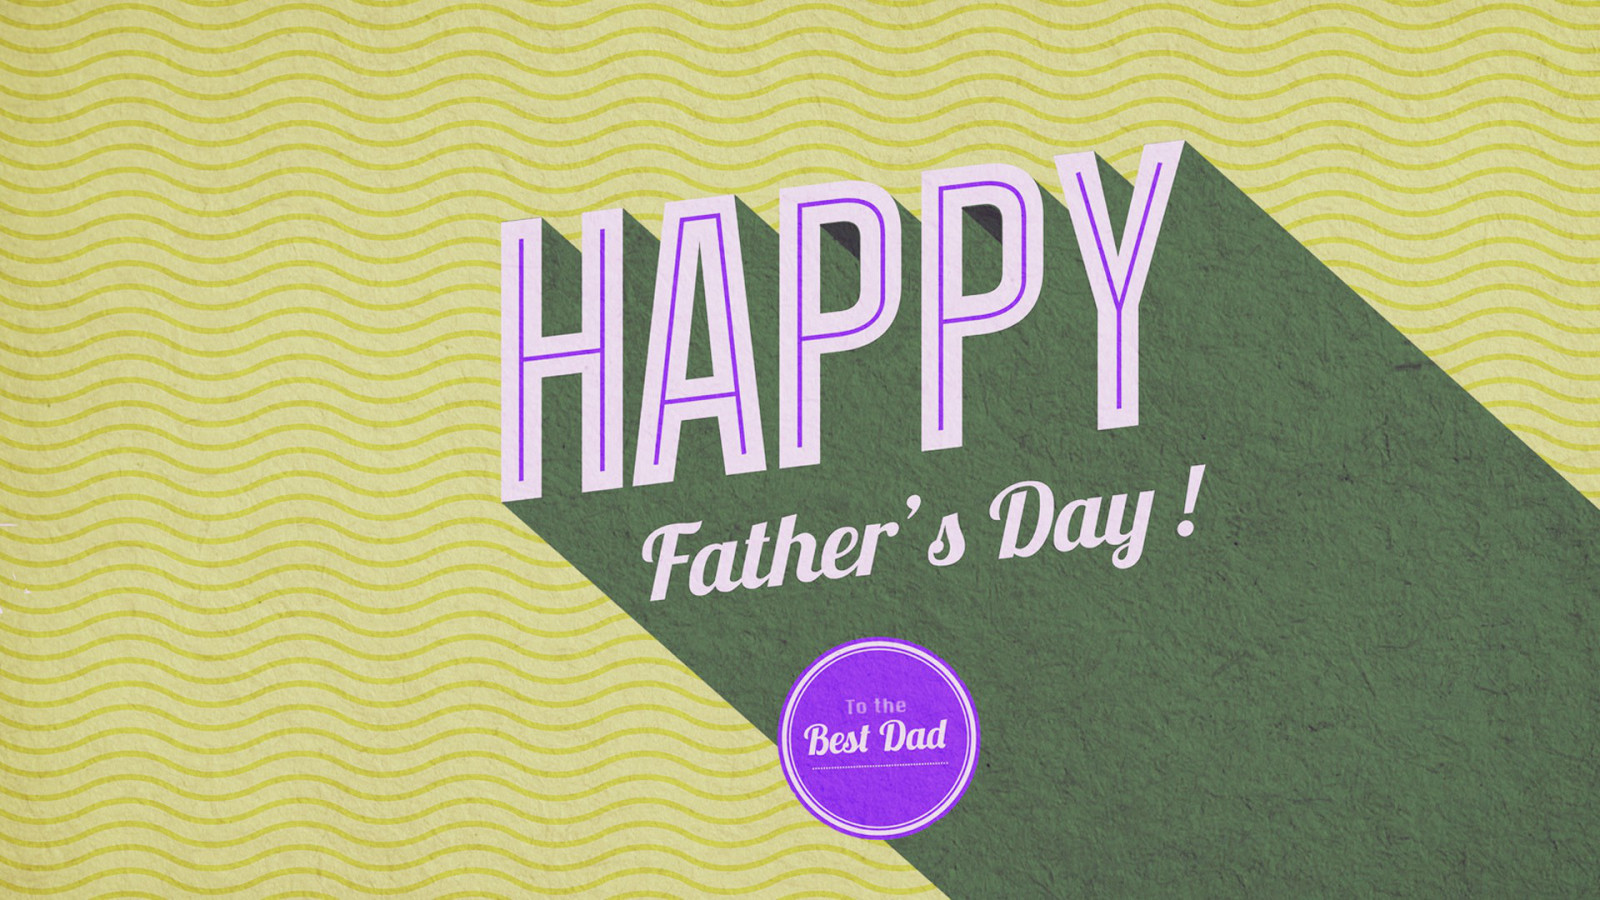 Happy Quotes And Sayings | Happy Fathers Day 2018 Quotes Sayings Wishes Messages Atulhost